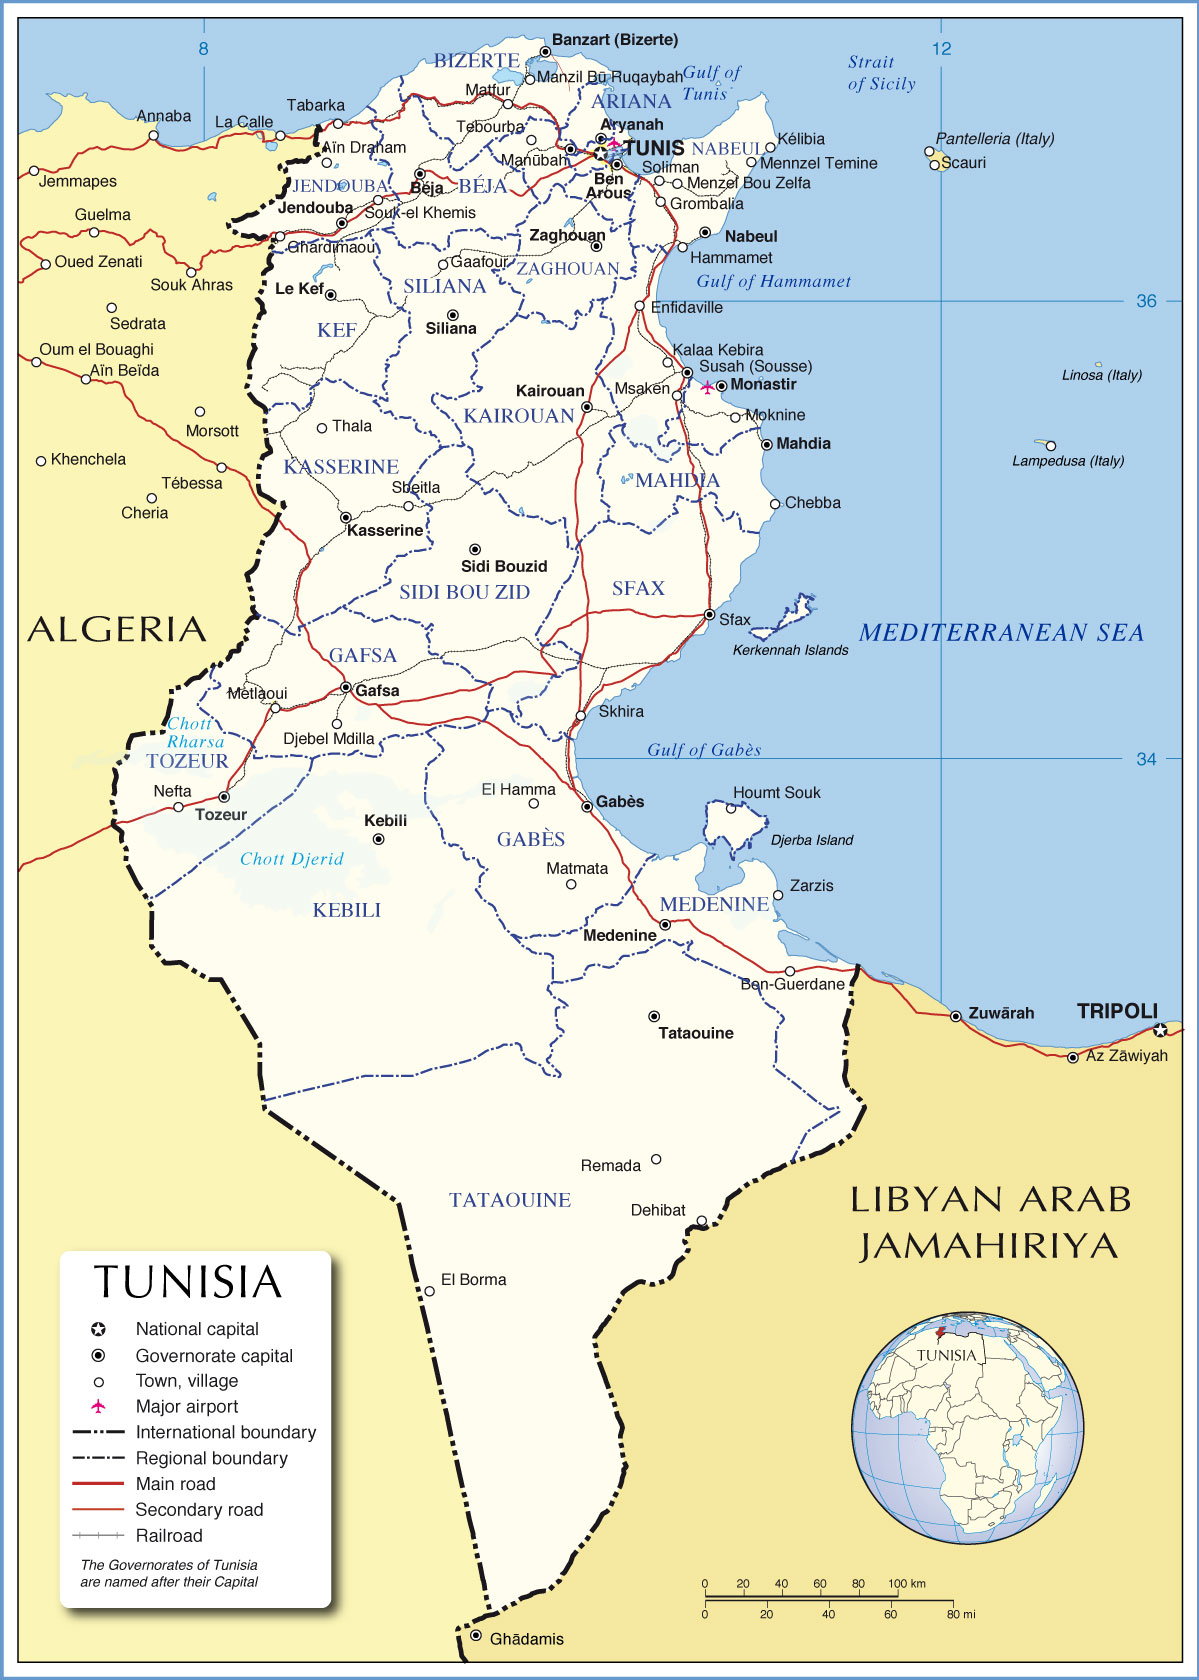 THE NEW INSURGENCIES AND MASS UPRISINGS IN AFRICA AND - Tunisia cities small scale map